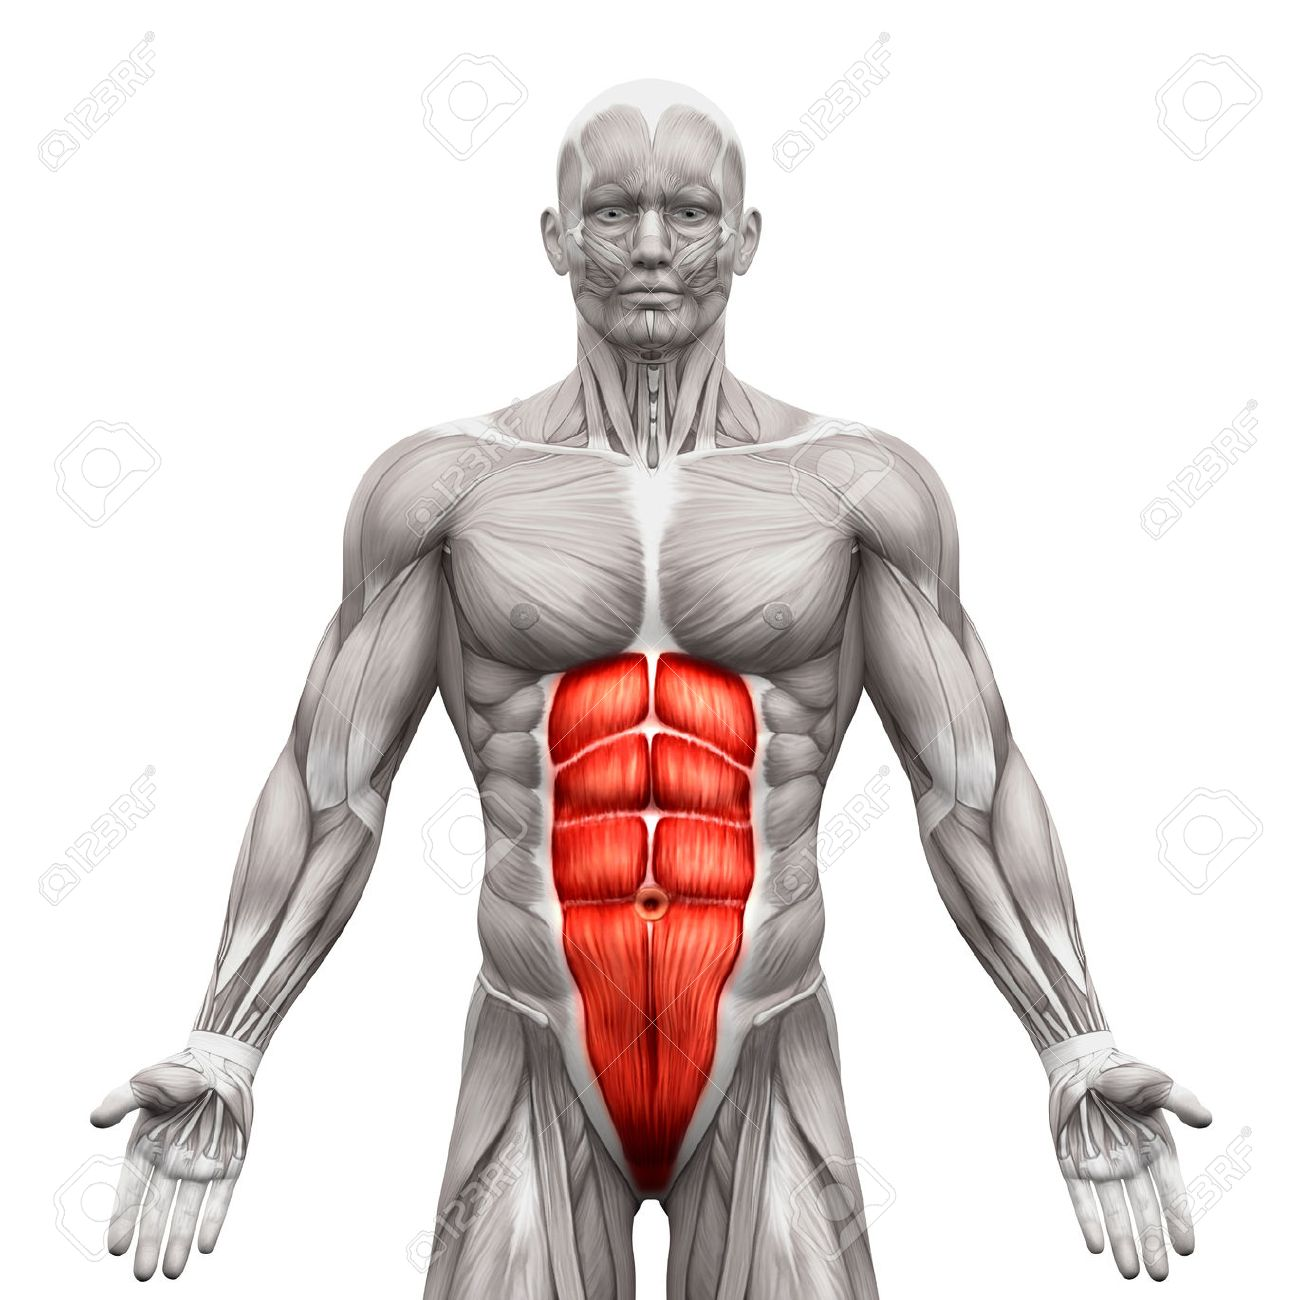 Rectus Abdominis - Abdominal Muscles - Anatomy Muscles Isolated ...